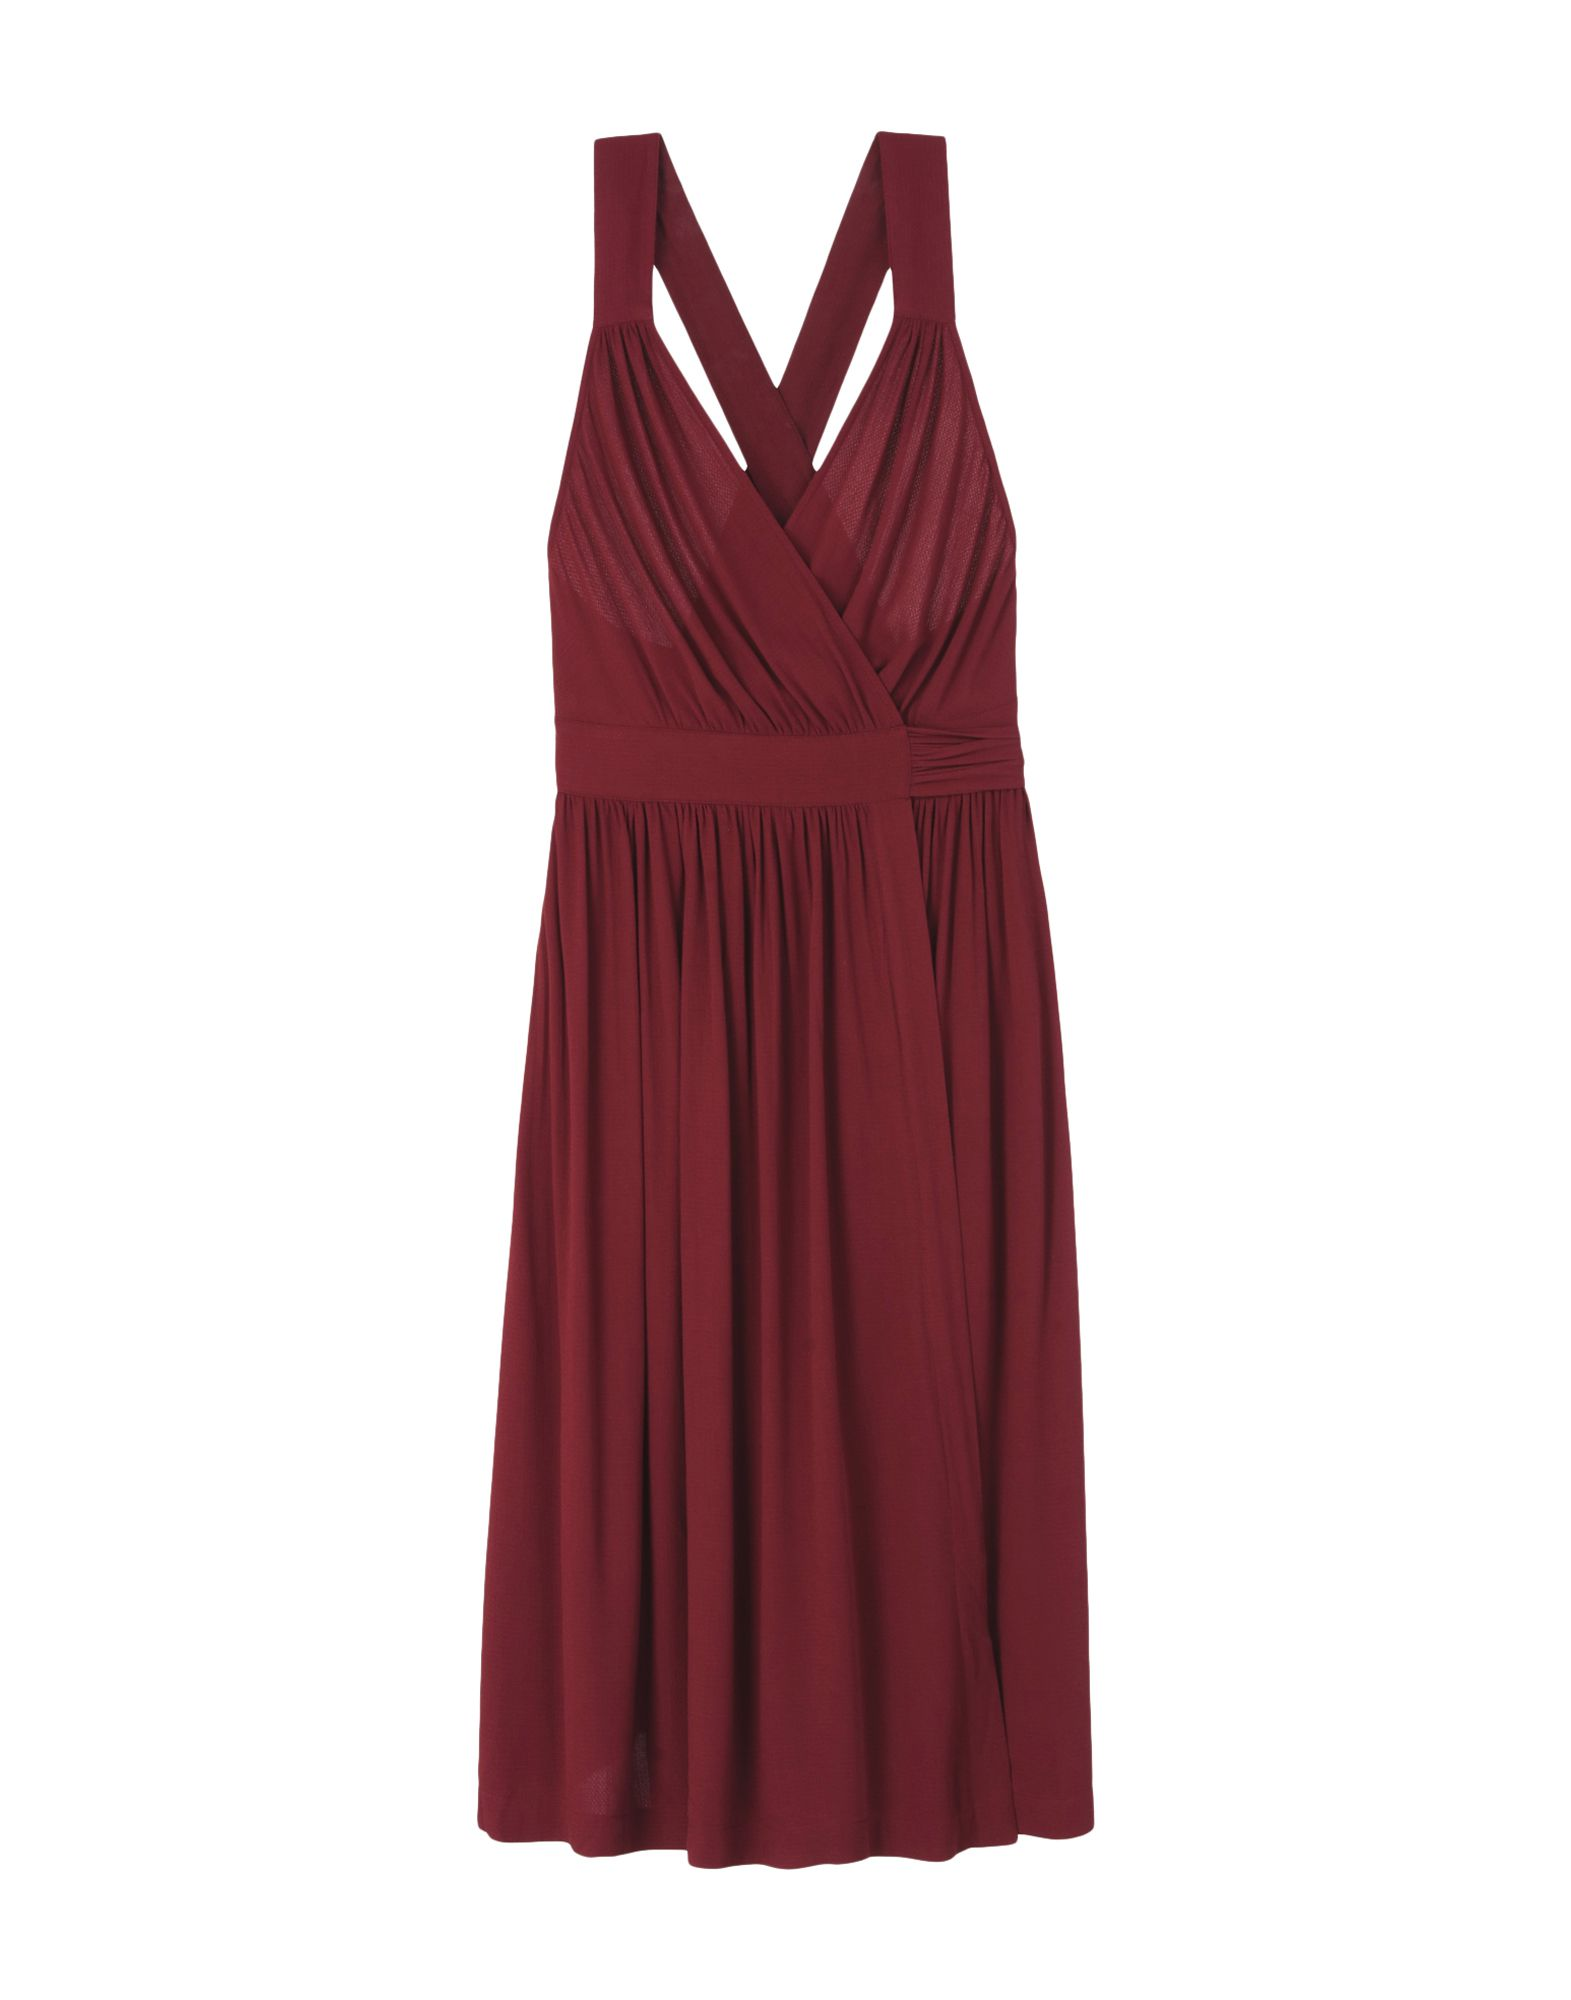 SESSUN Knee-Length Dress in Maroon